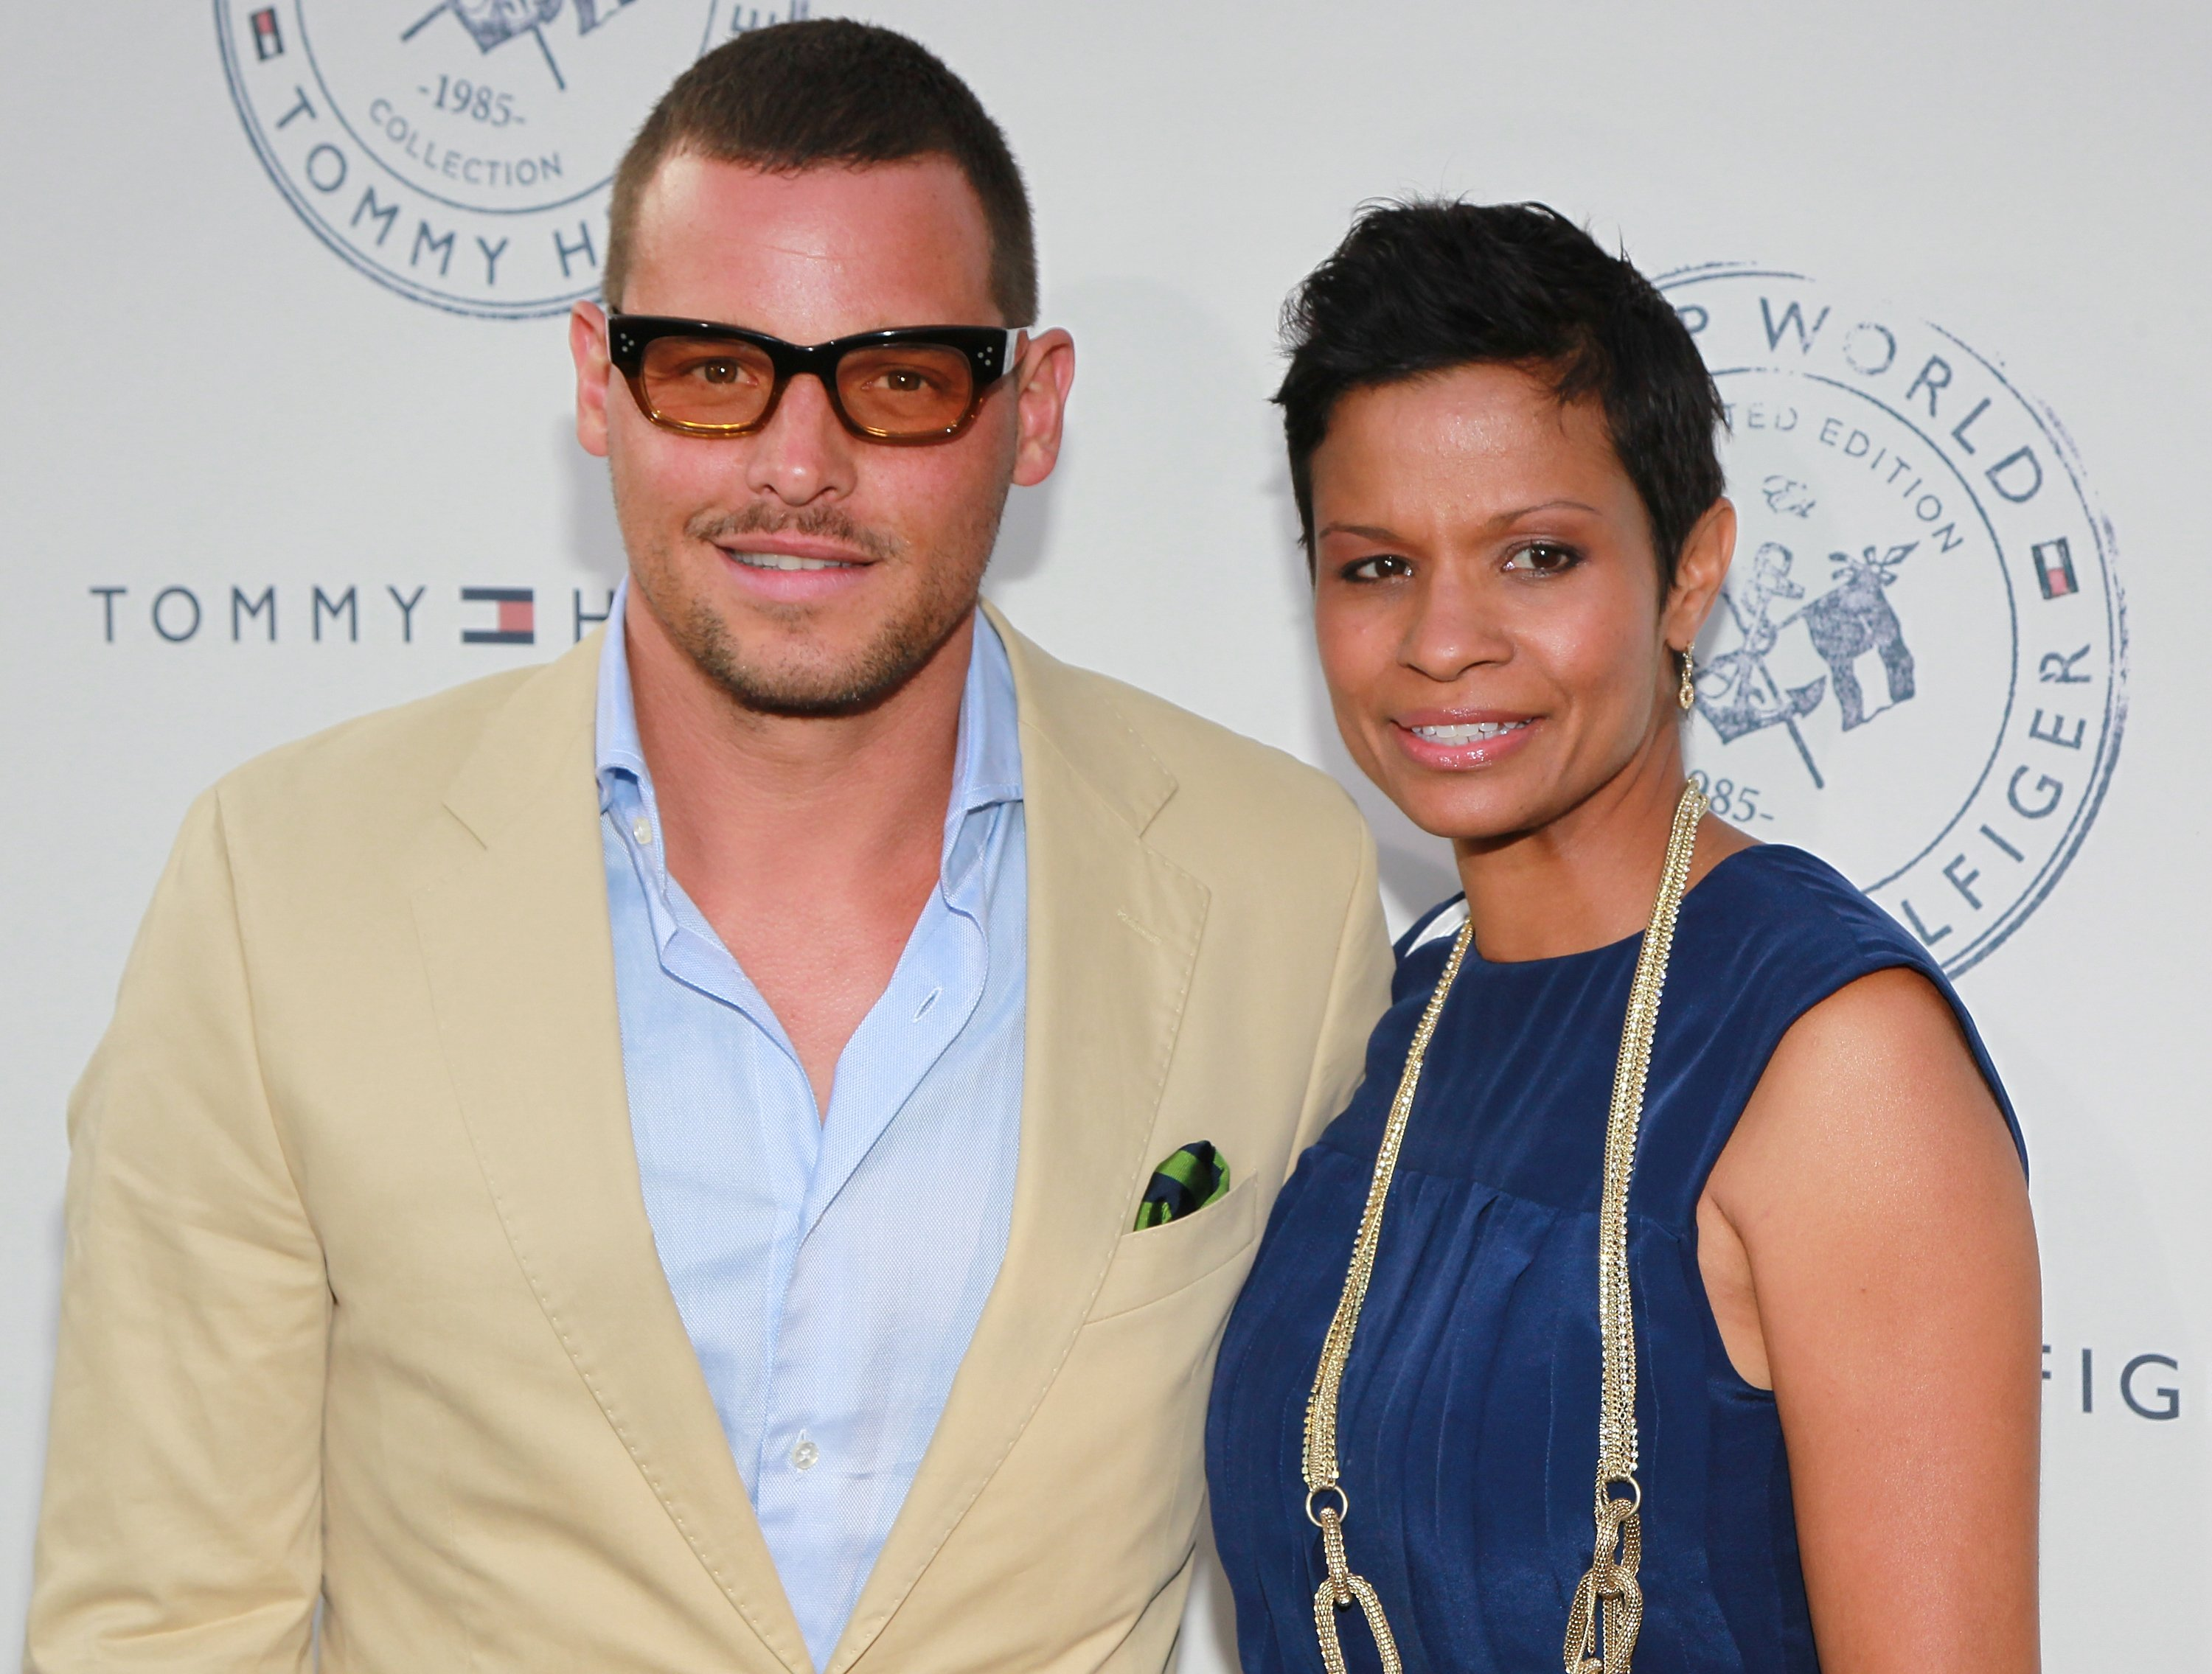 Justin Chambers and Keisha Chambers on June 9, 2011 in Los Angeles, California | Source: Getty Images/Global Images Ukraine